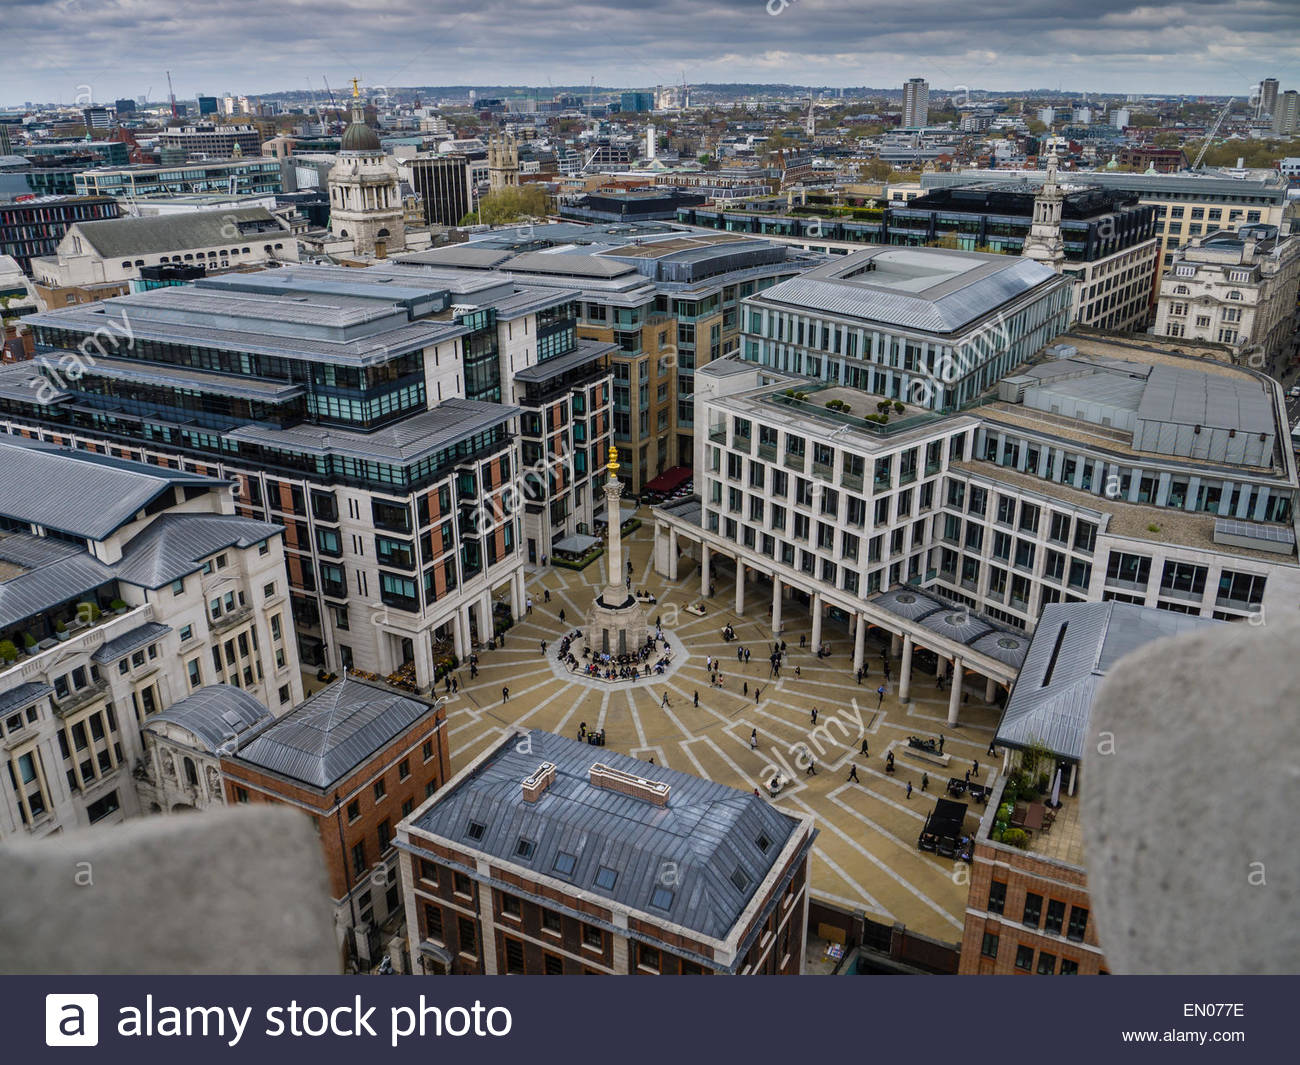 London View from Stone Gallery St Paul's Cathedral Dome of Patermoster Square England UK - Stock Image